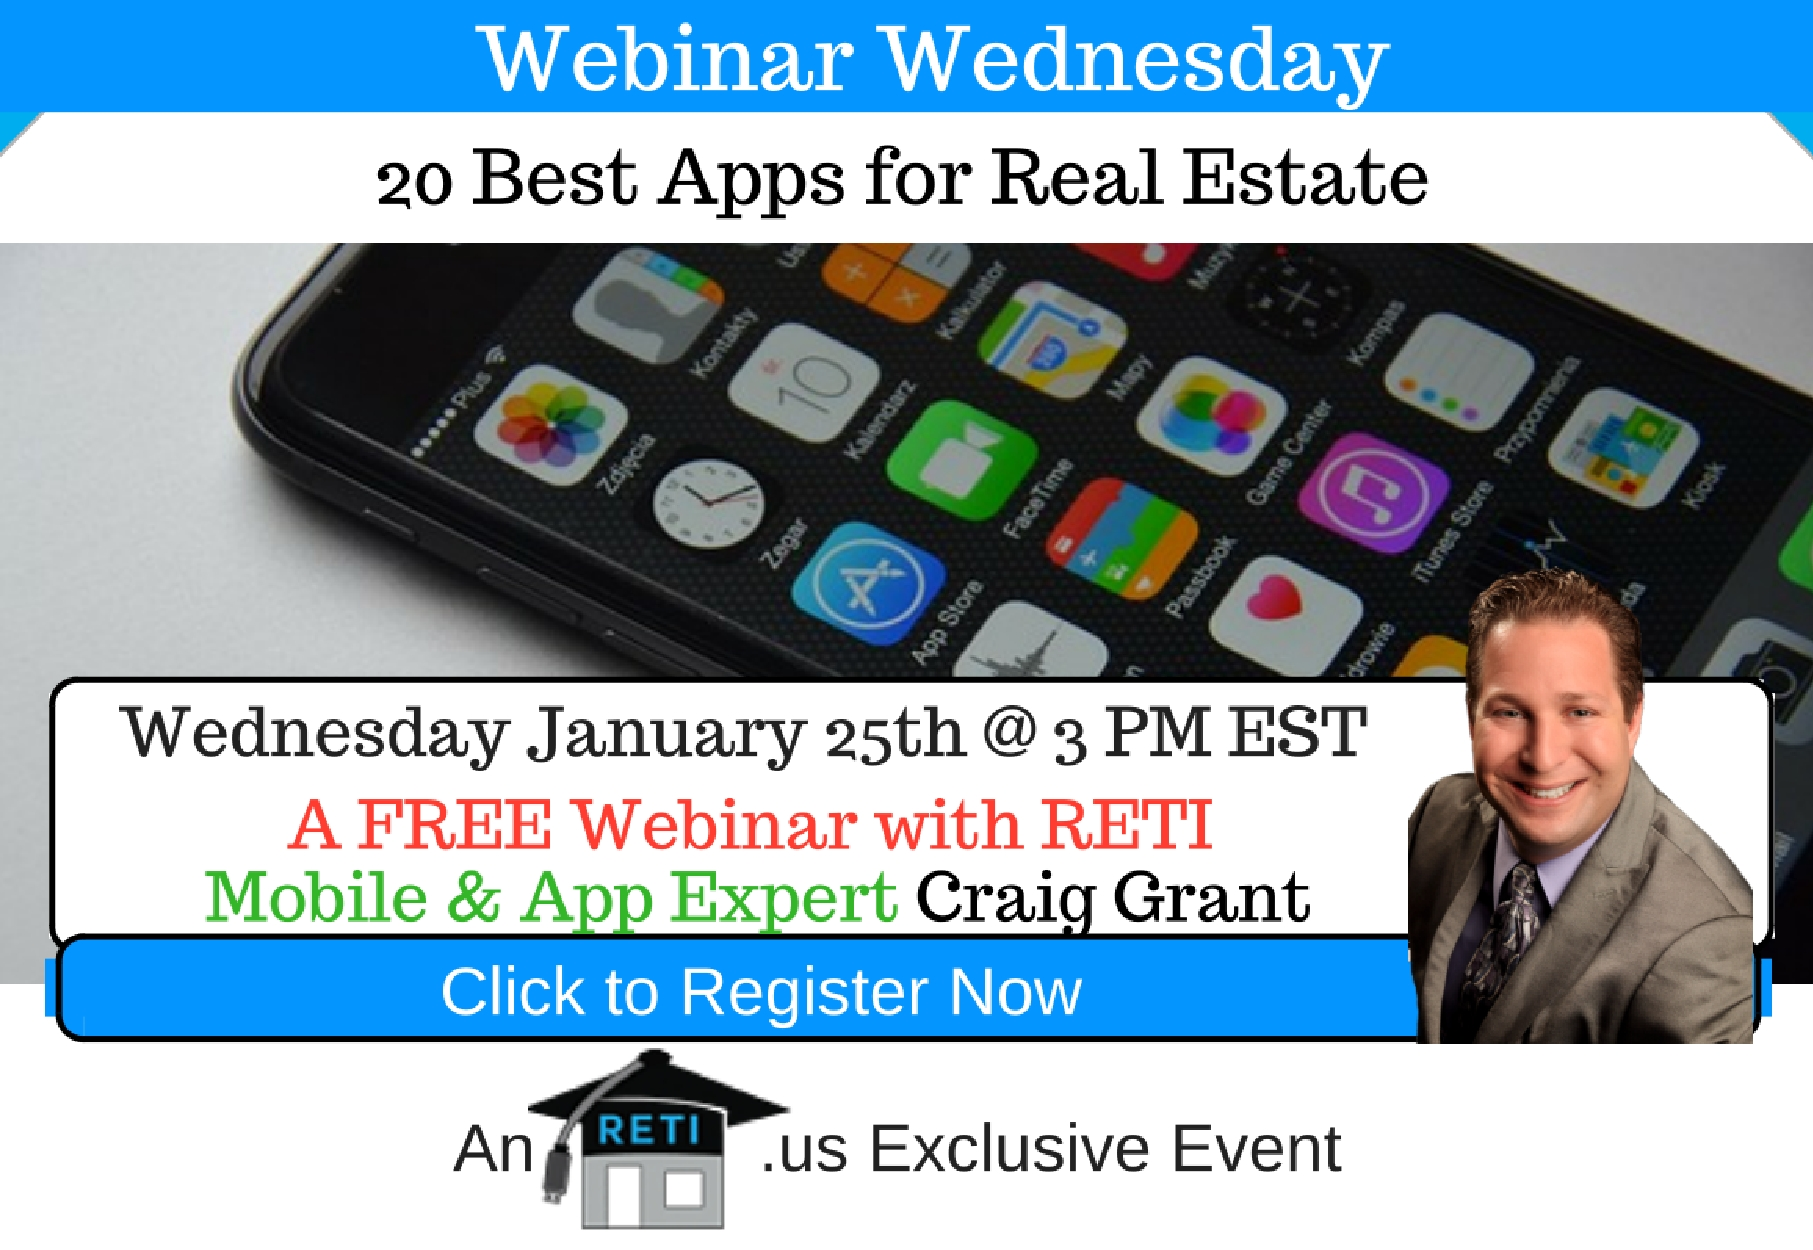 —- RETI's FREE Webinar Wednesdays  —- January 25th / This Weeks Topic —-  20 Best Apps for Real Estate w Craig Grant